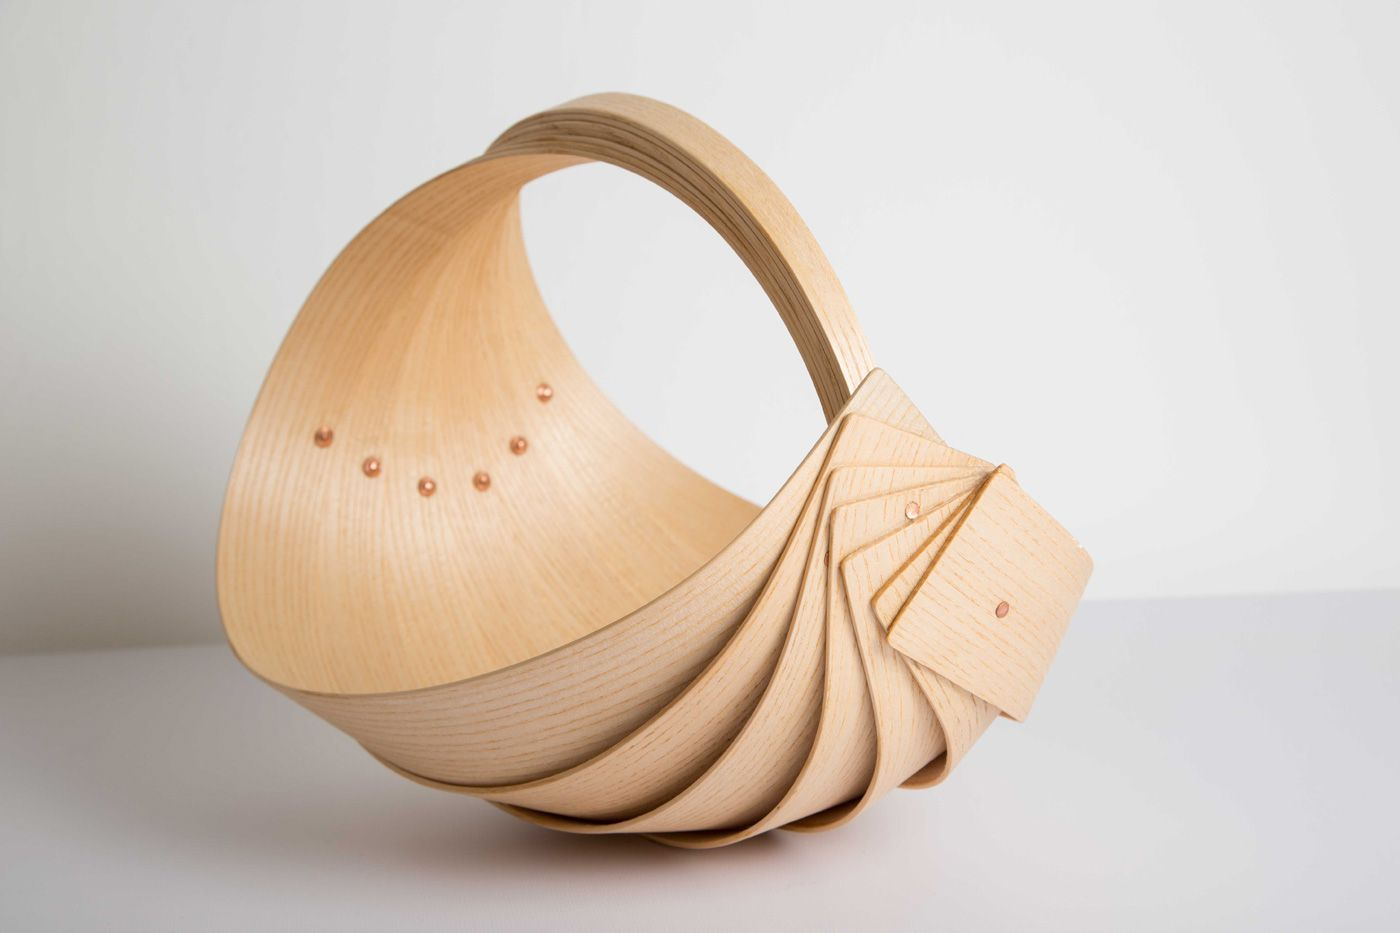 Steam-bent basket by Jane Crisp